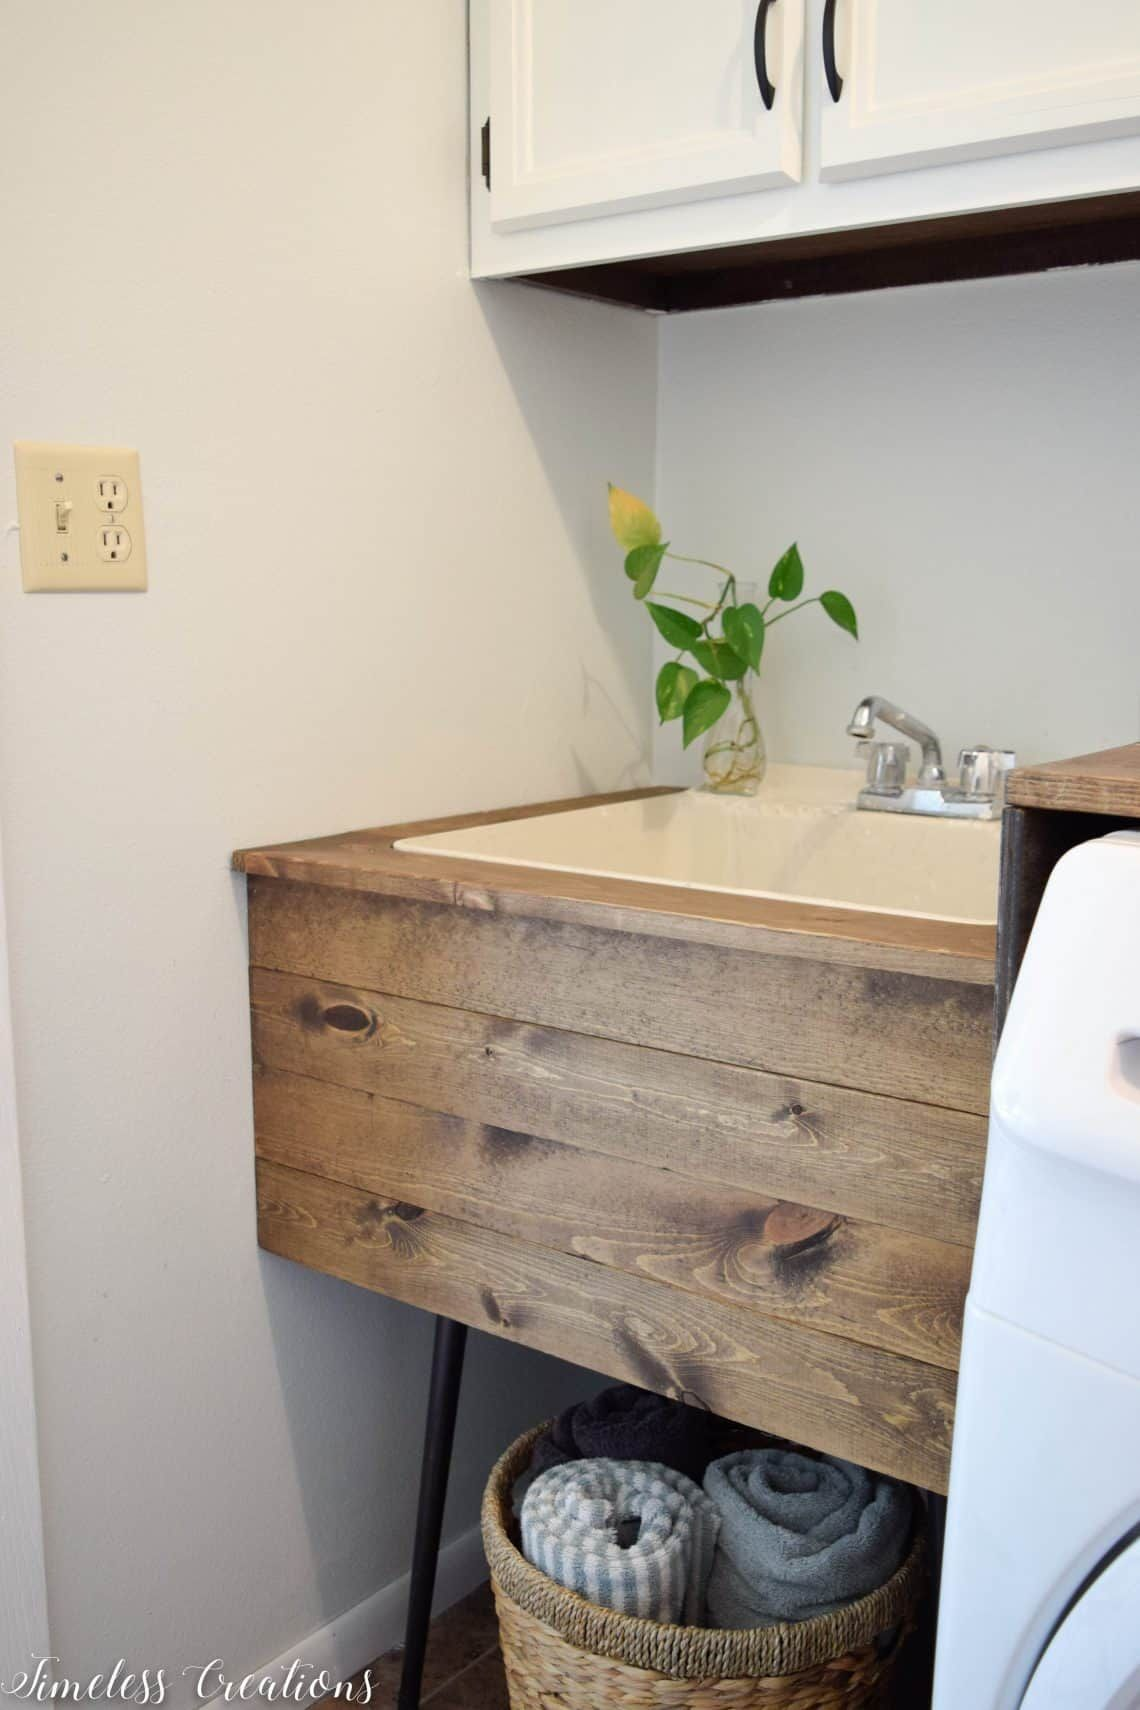 Design Your Own Laundry Room: How Create Your Own Bathroom Sink